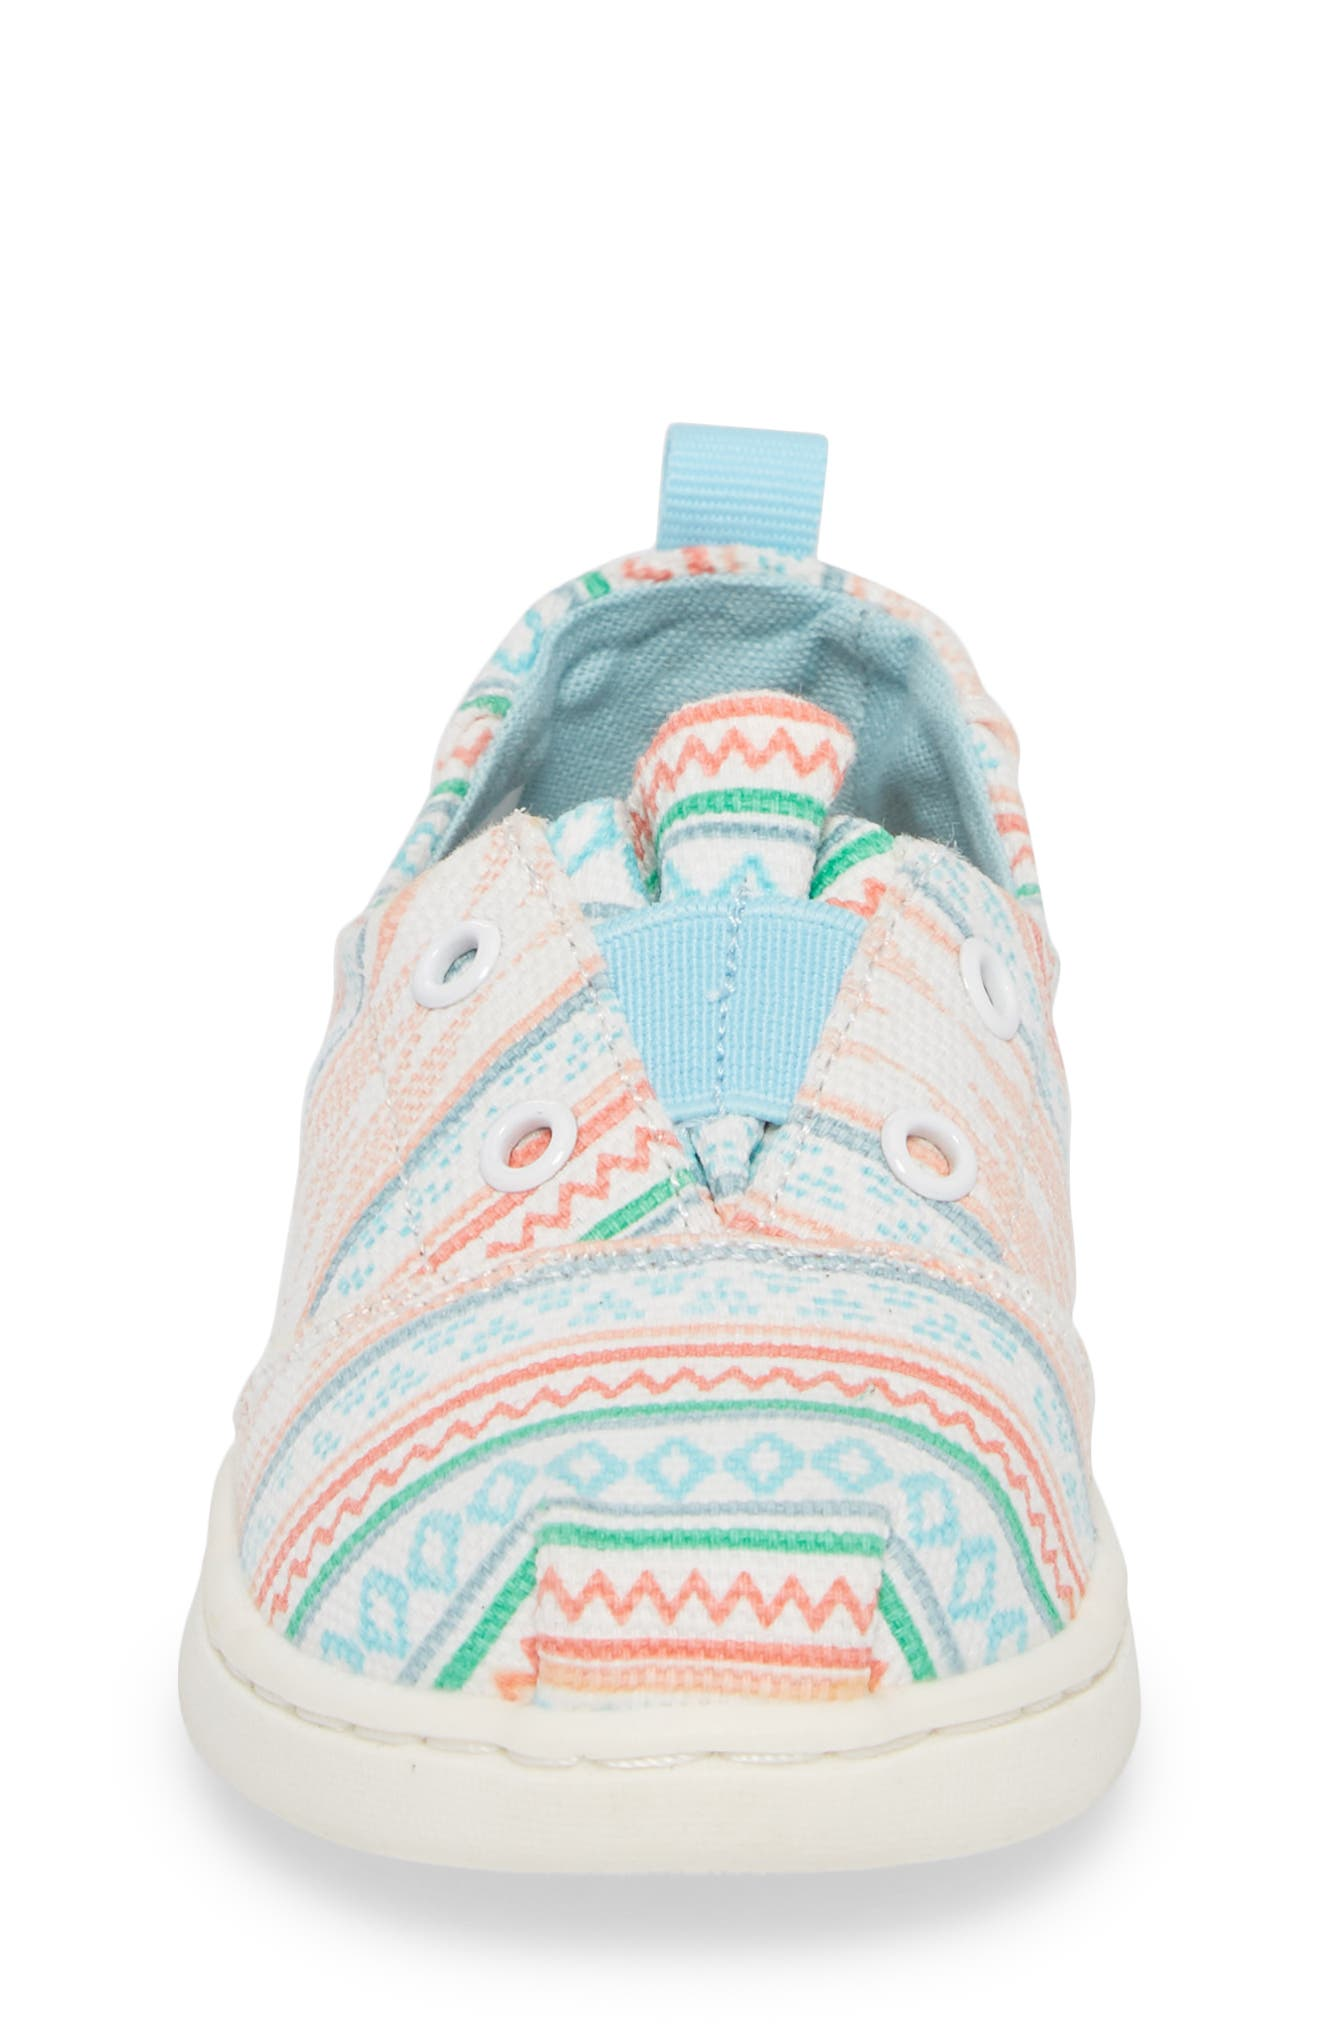 Lumin Slip-On,                             Alternate thumbnail 4, color,                             400